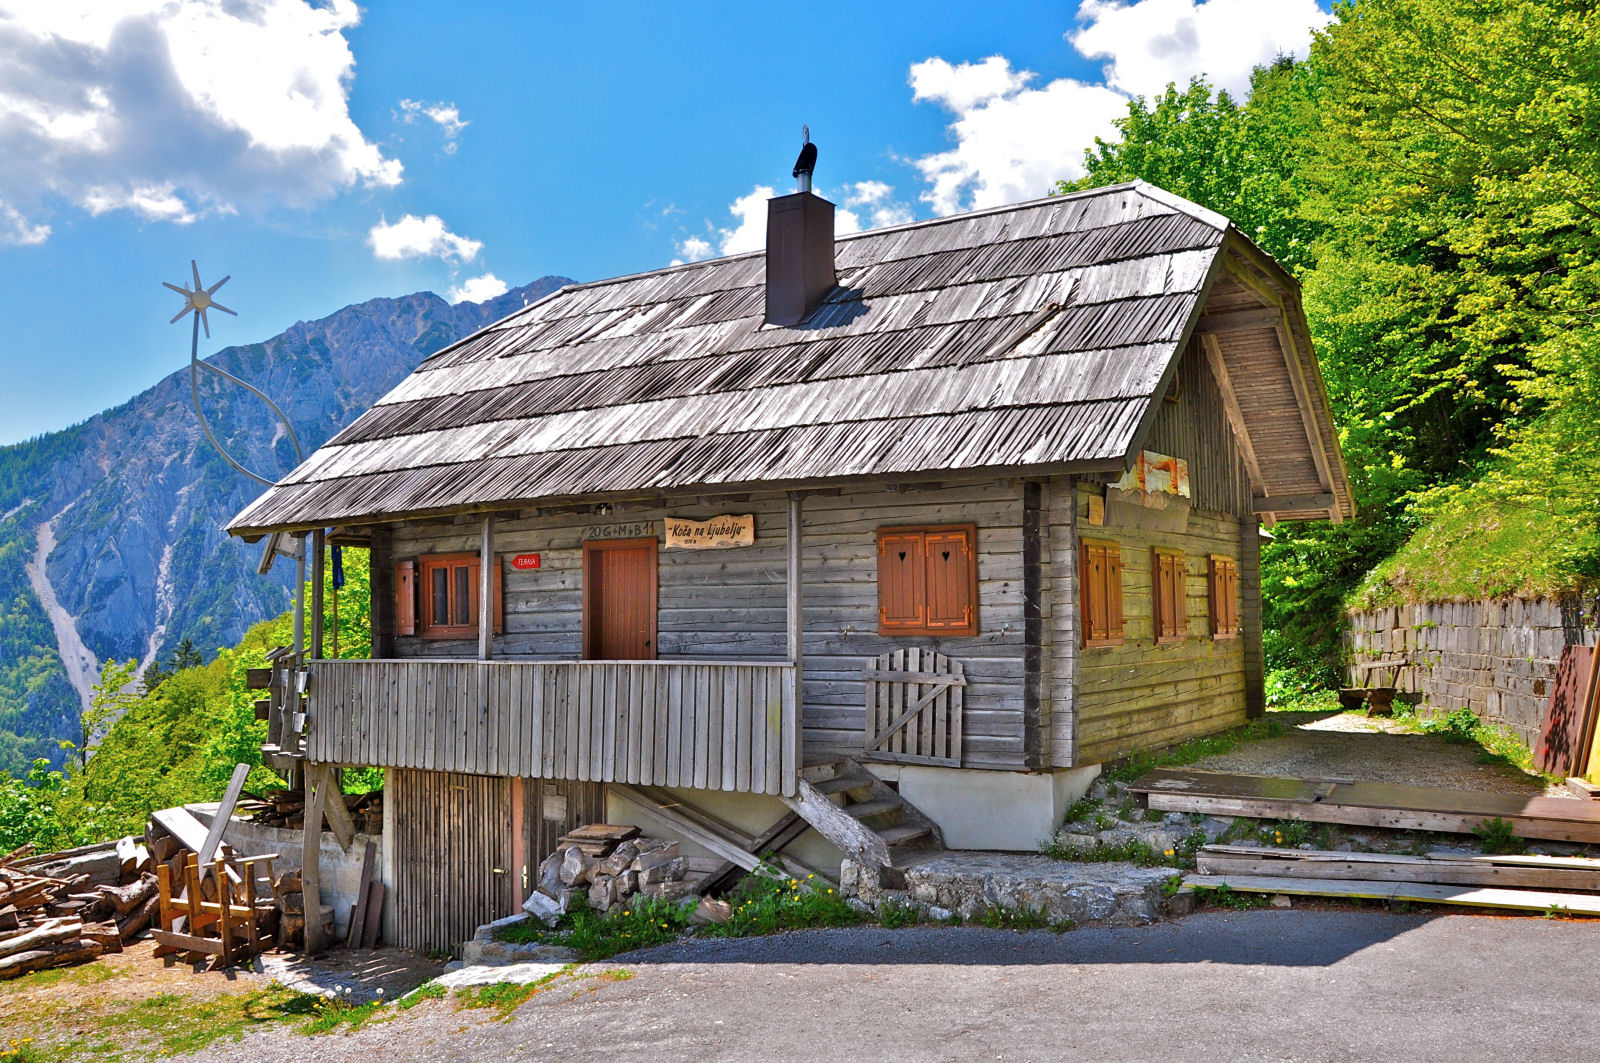 Slovenian alpine hut on the Old Loibl mountain pass